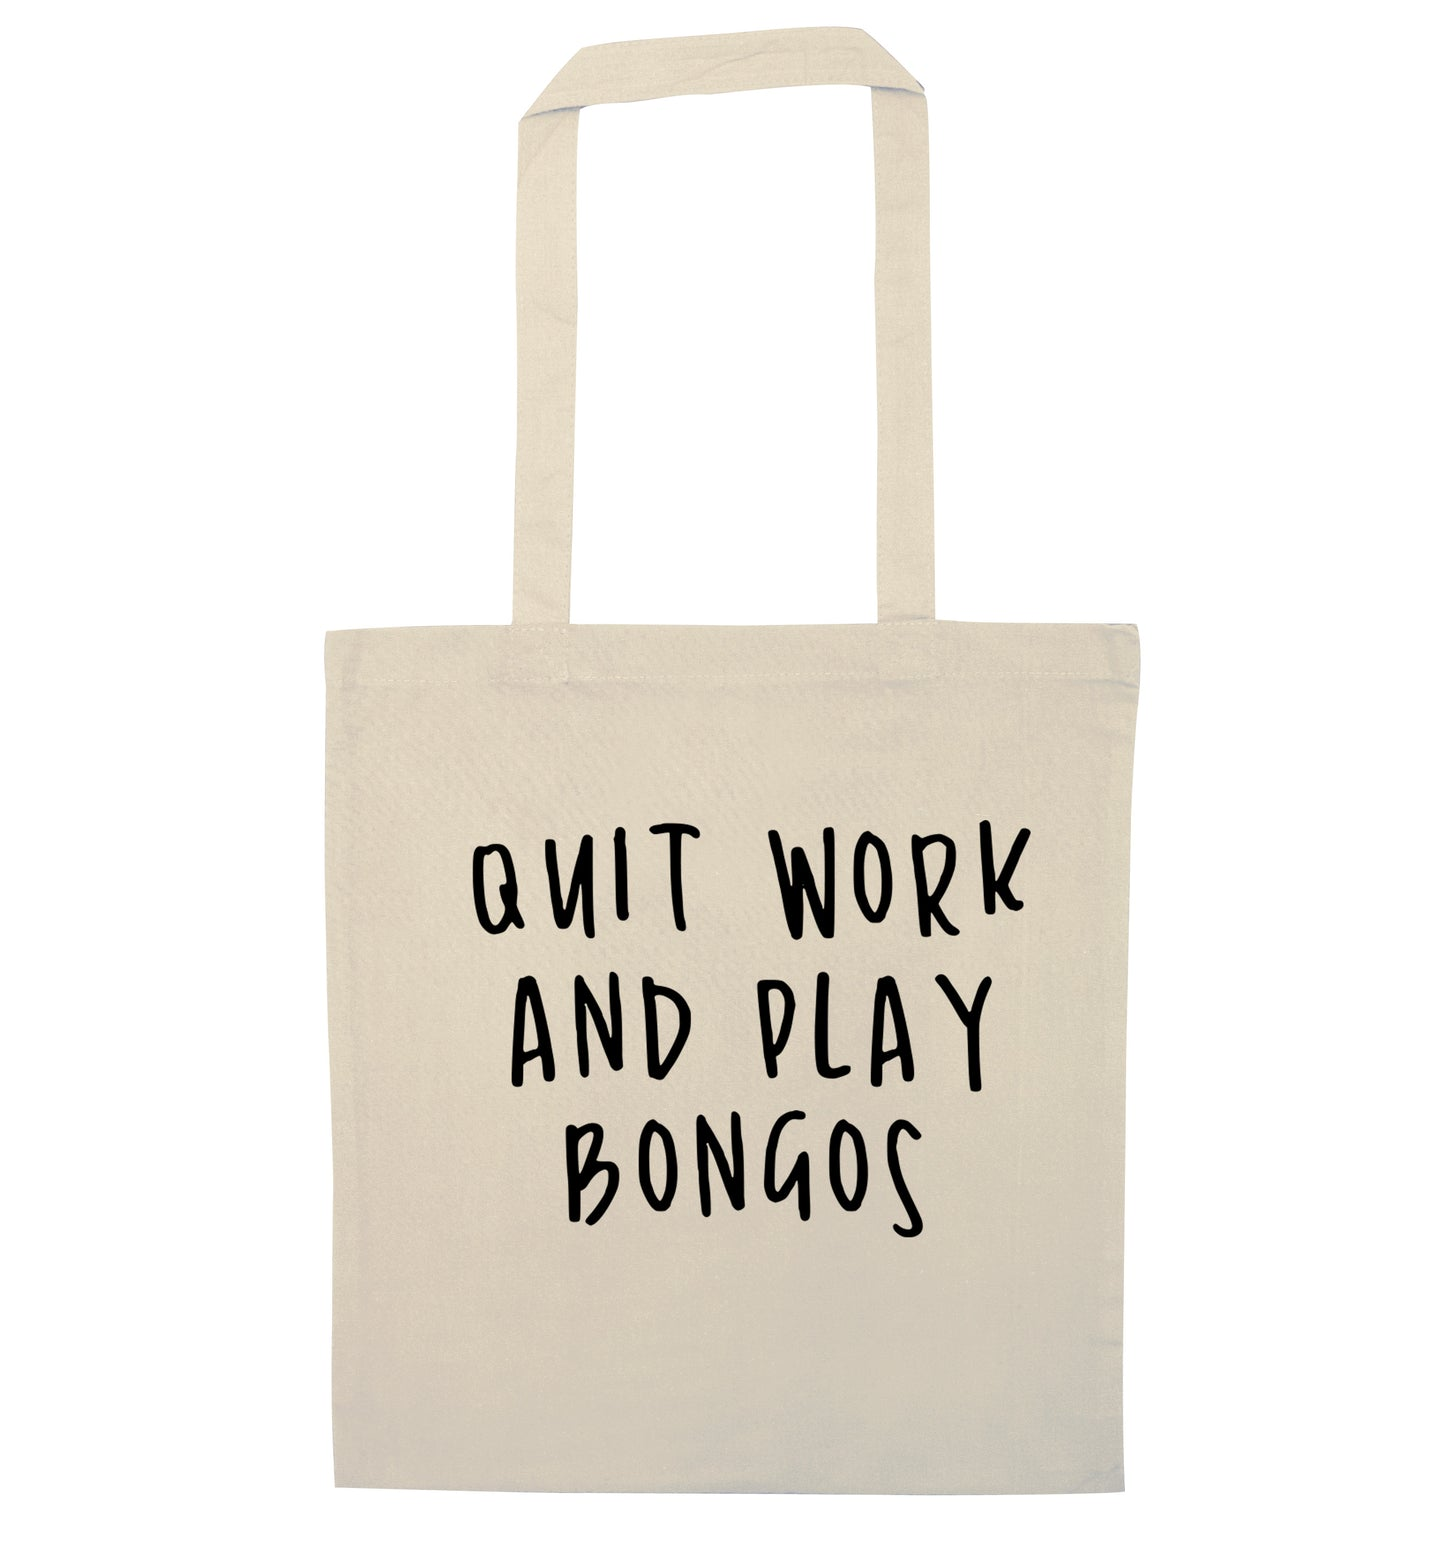 Quit work and play bongos natural tote bag